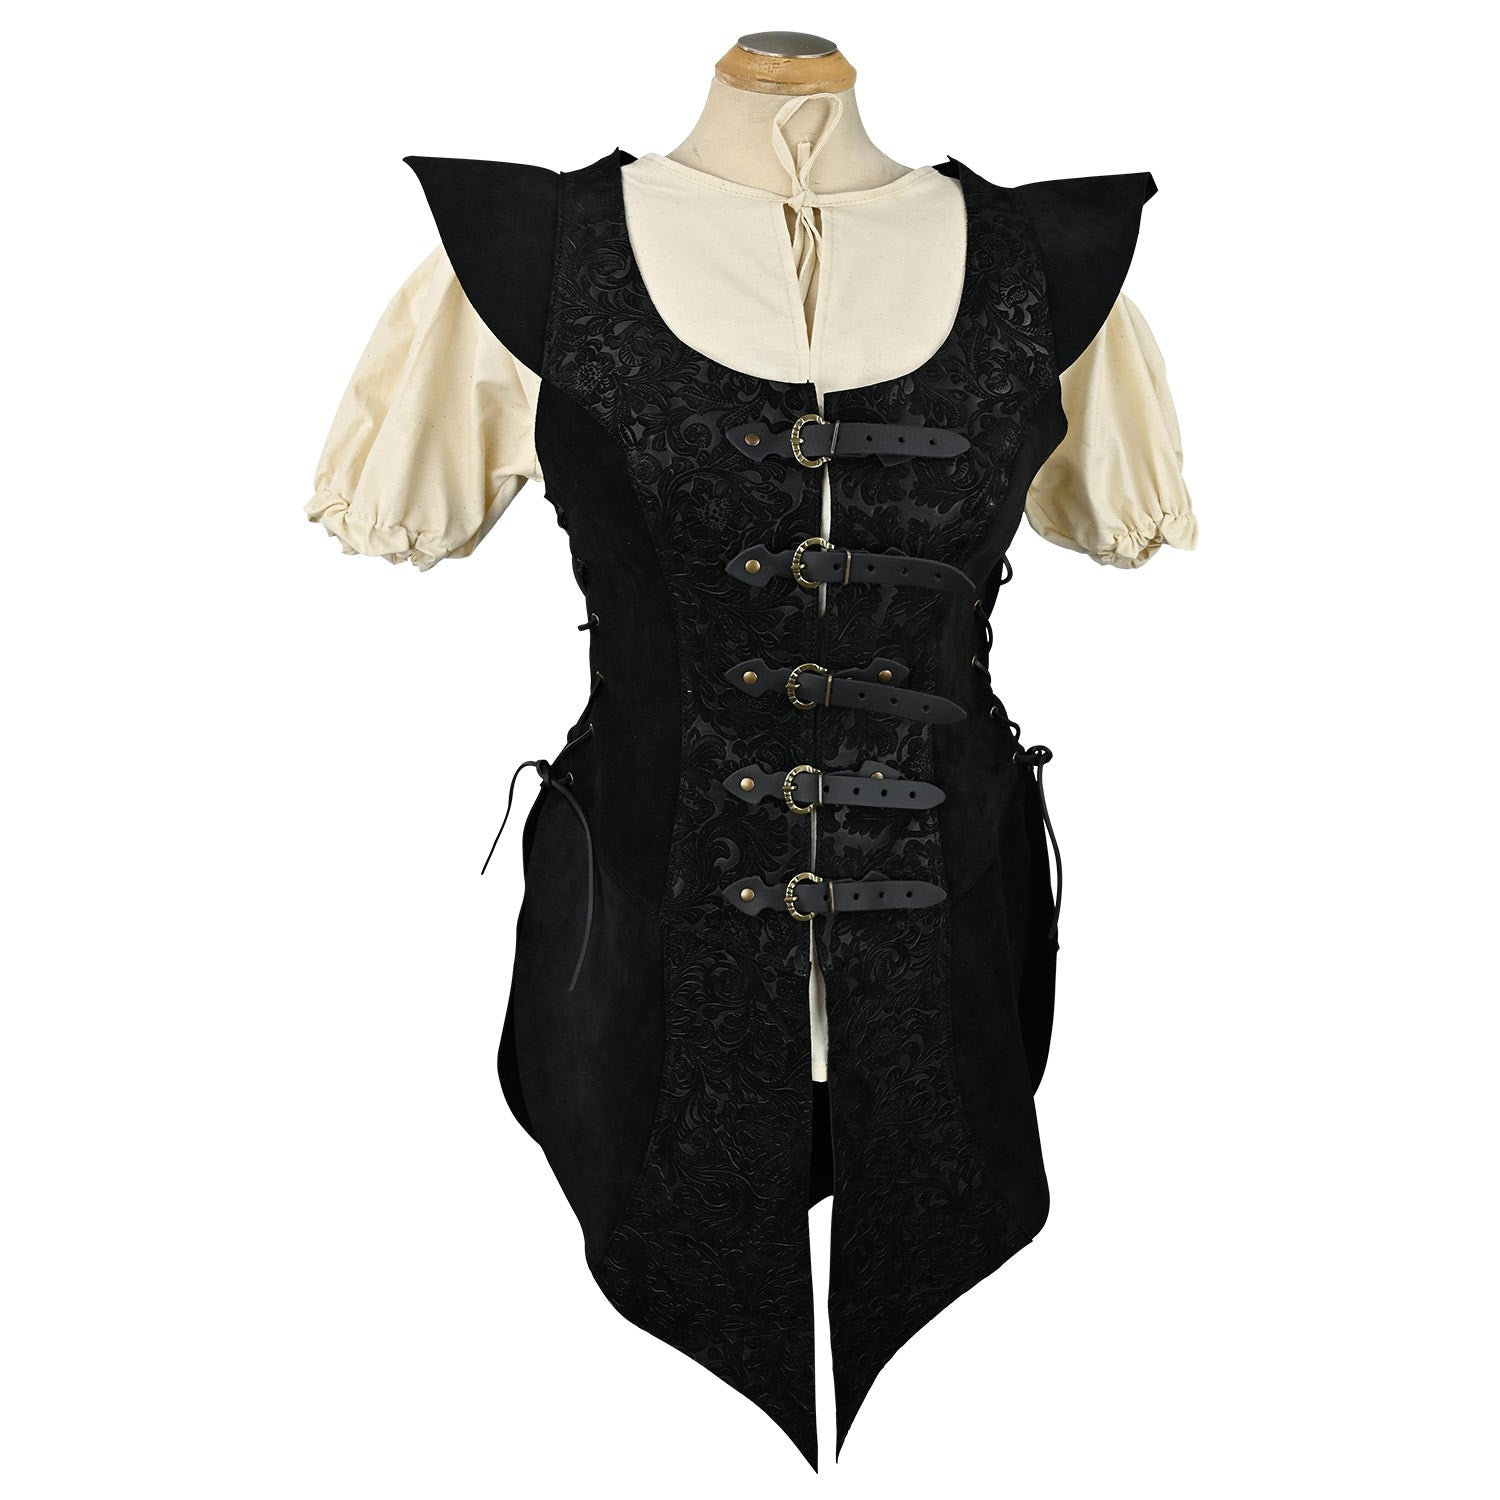 Ylenne Deluxe long Doublet